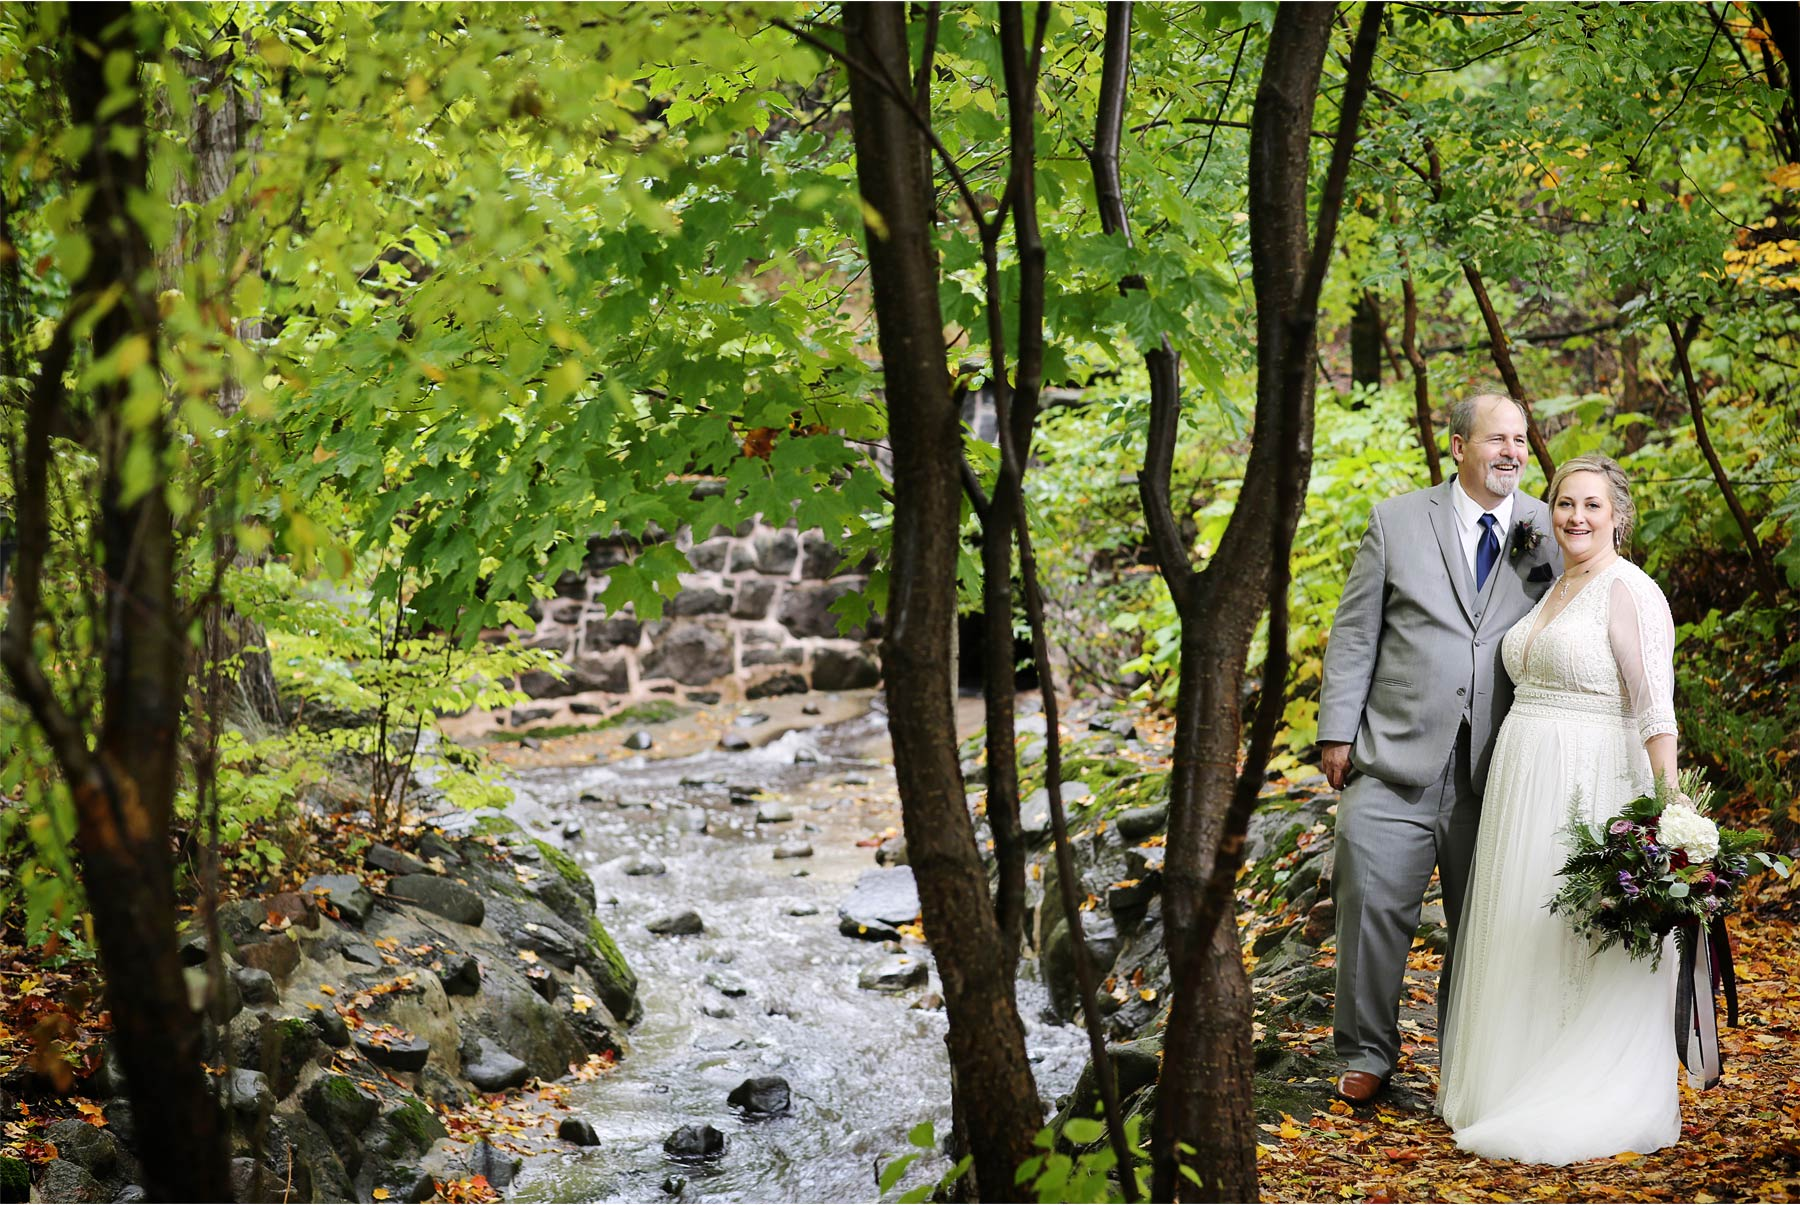 05-Duluth-Minnesota-Wedding-Photography-by-Vick-Photography-Glensheen-Mansion-First-Look-Autumn-Fall-Kelli-and-Marc.jpg